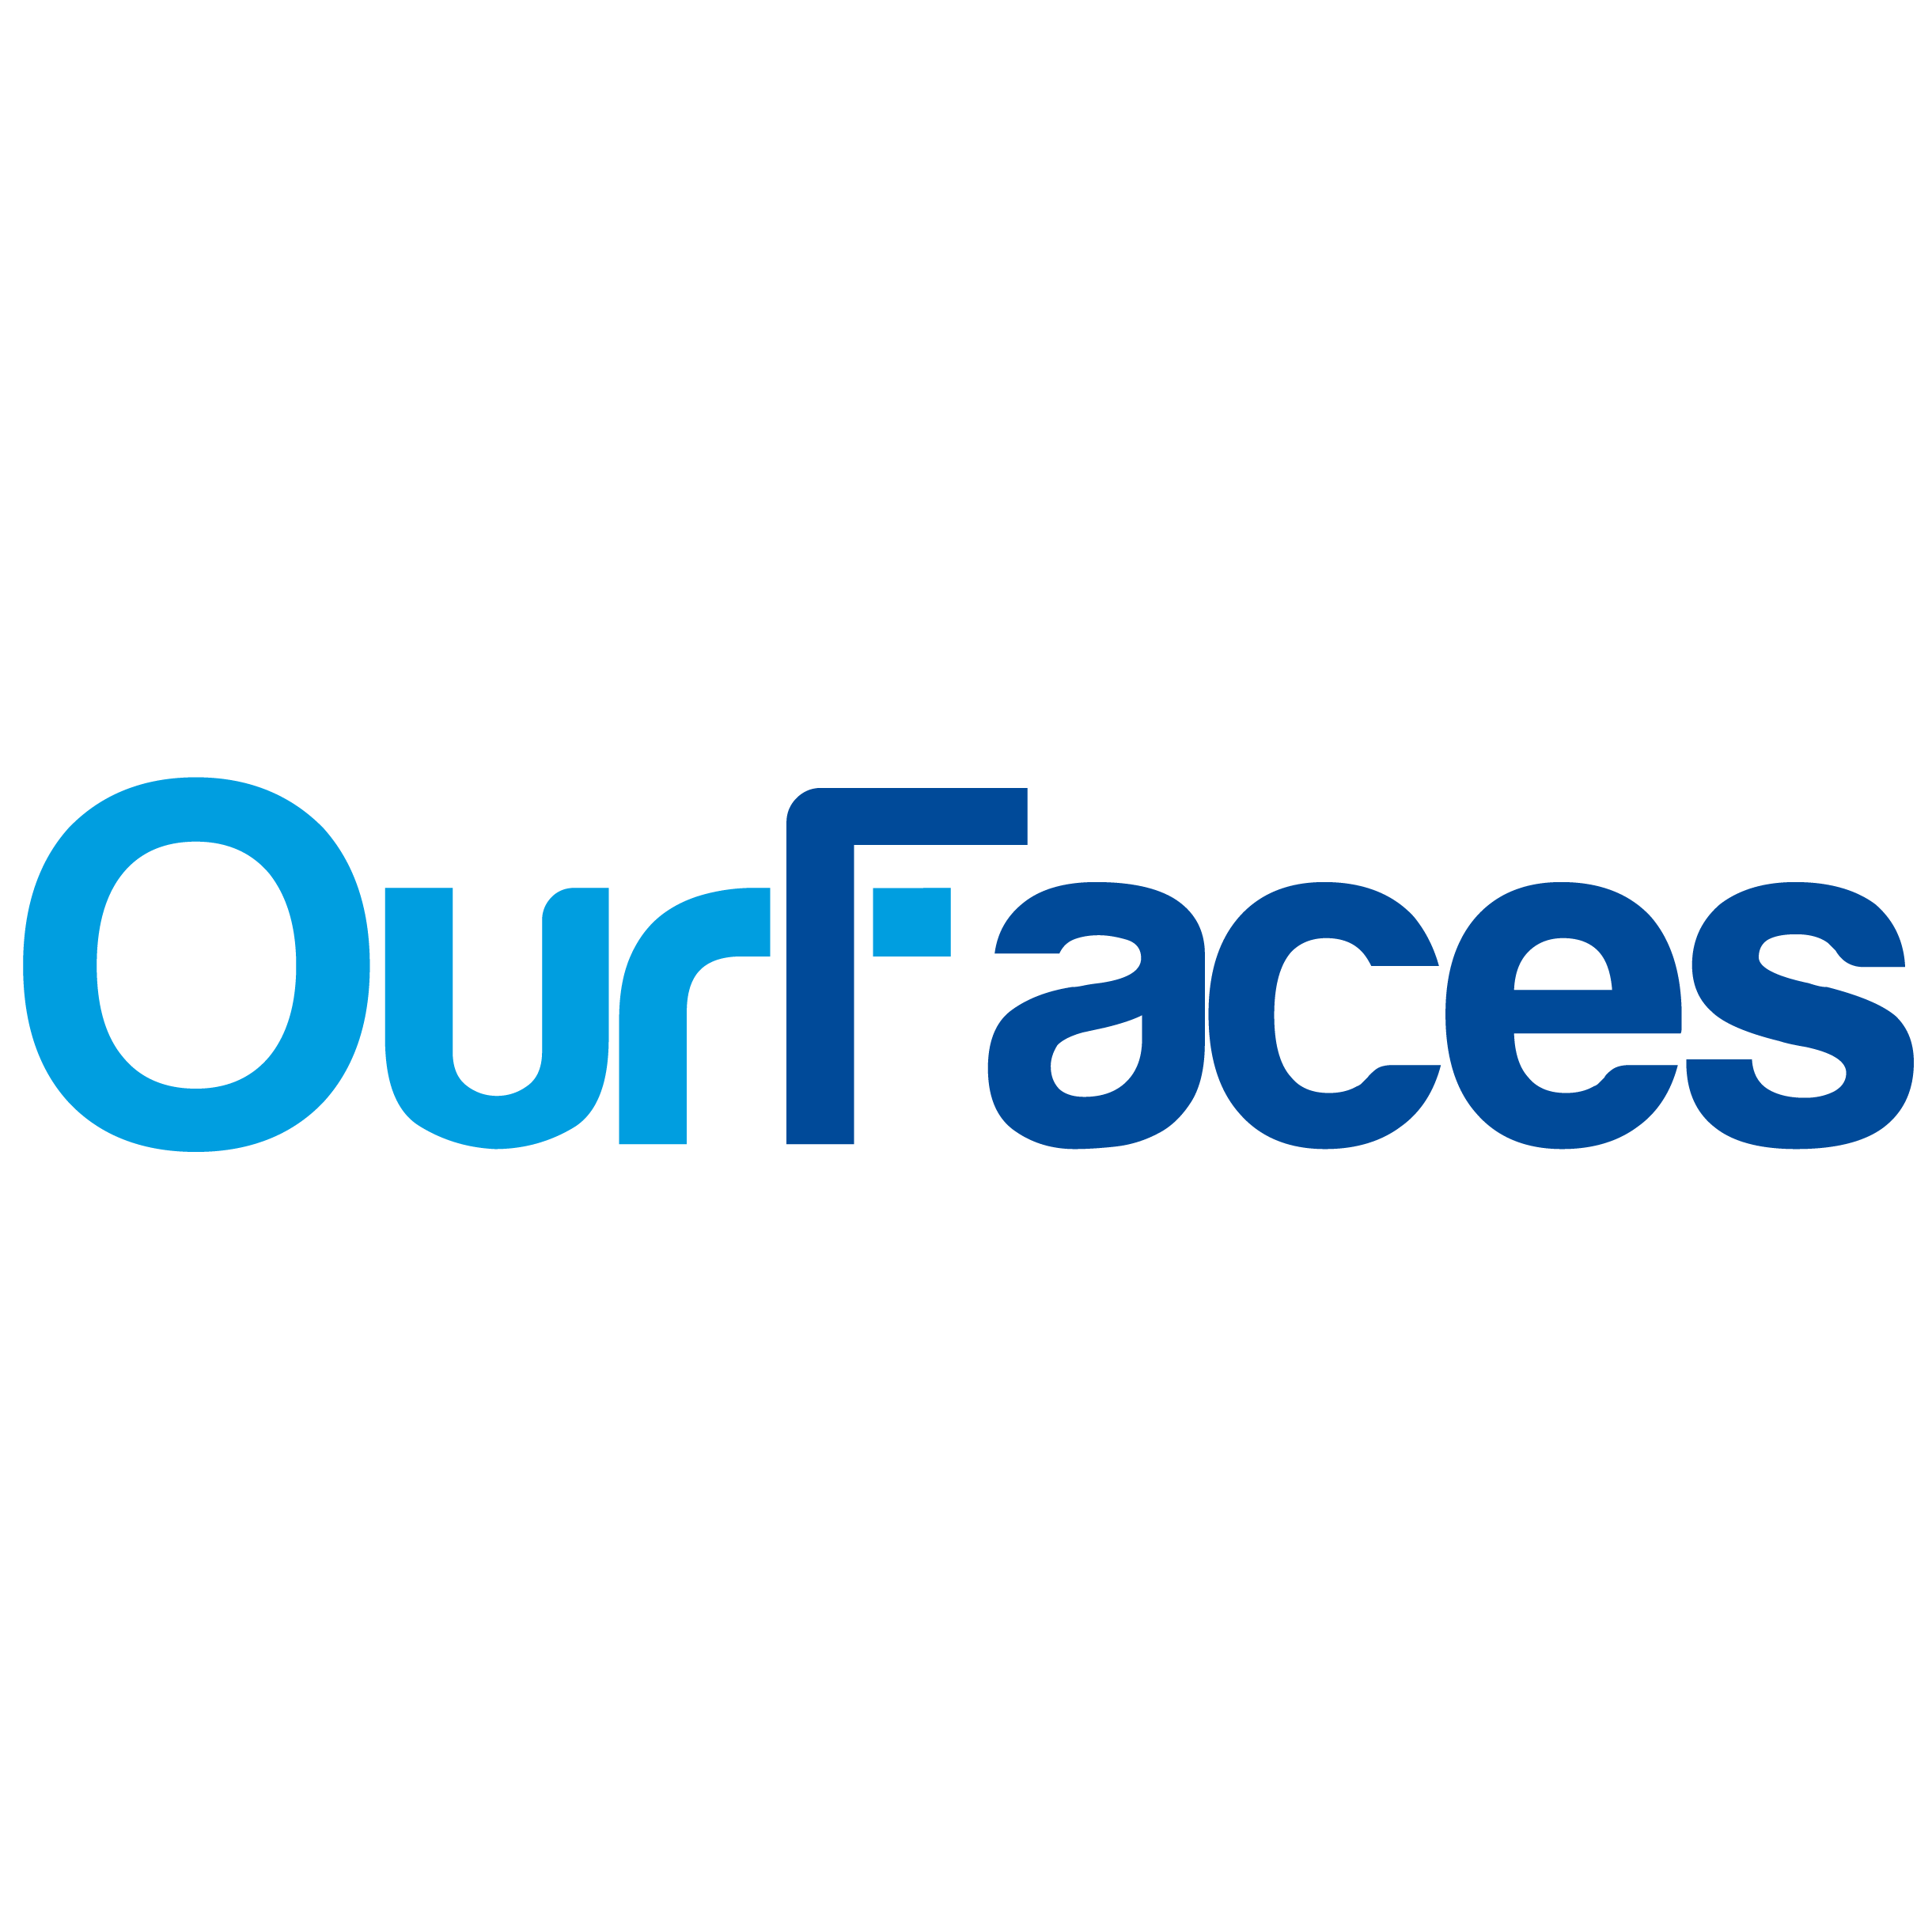 Ourfaces Import & Export LLC